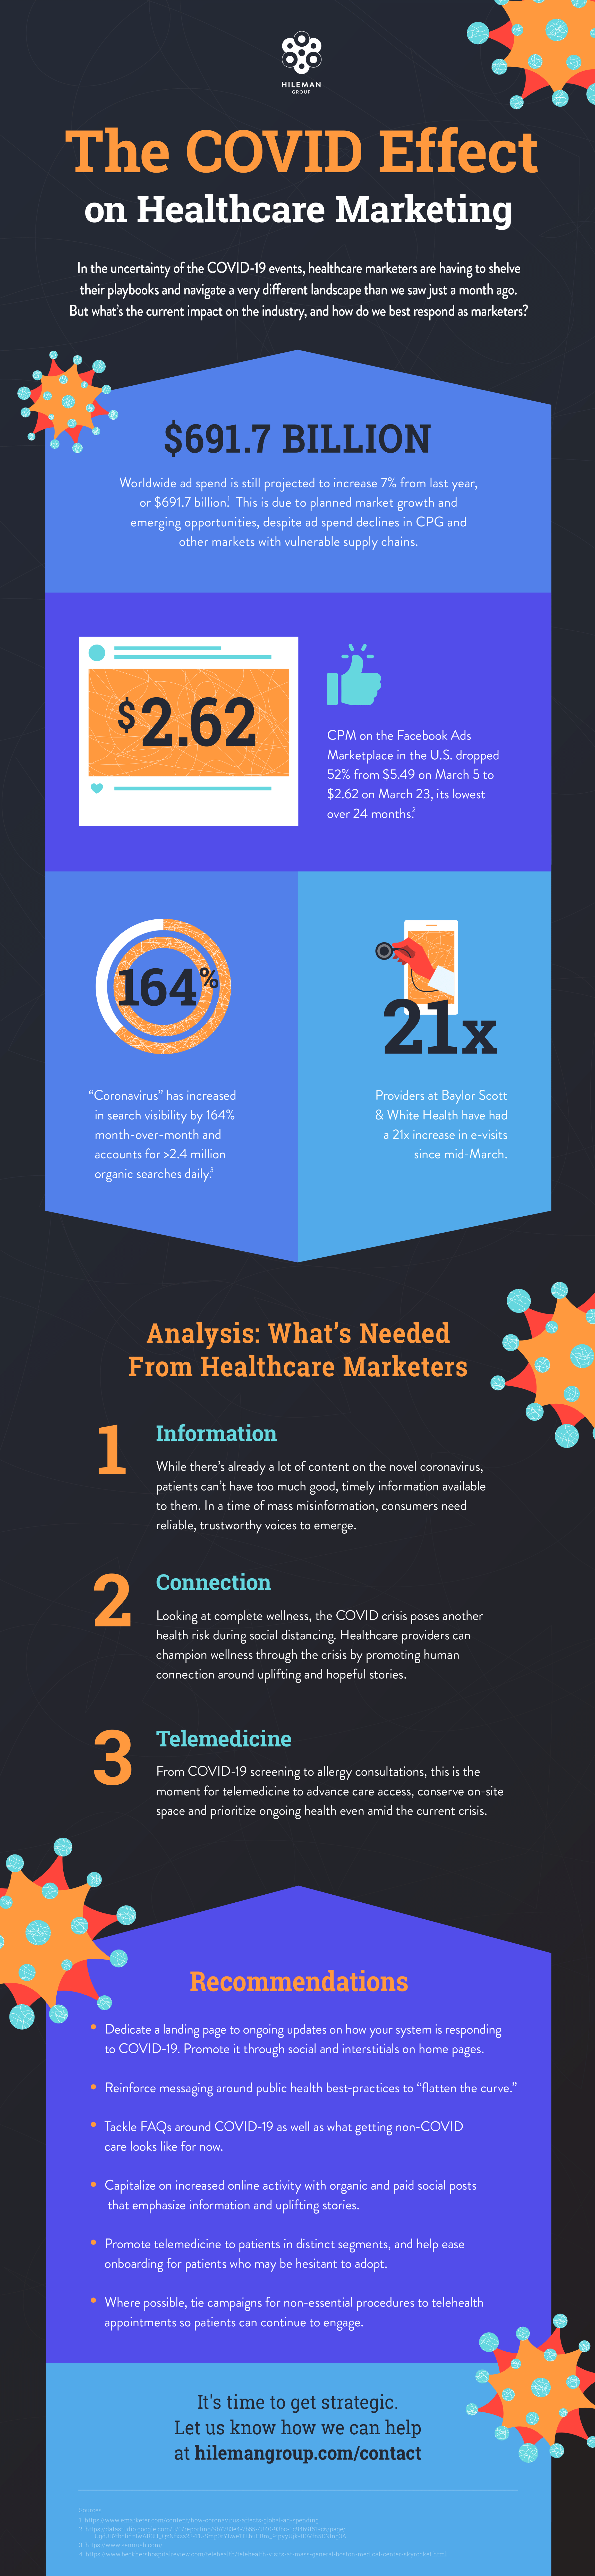 COVID-19-Infographic-Marketing-Healthcare-v8-NEW.png